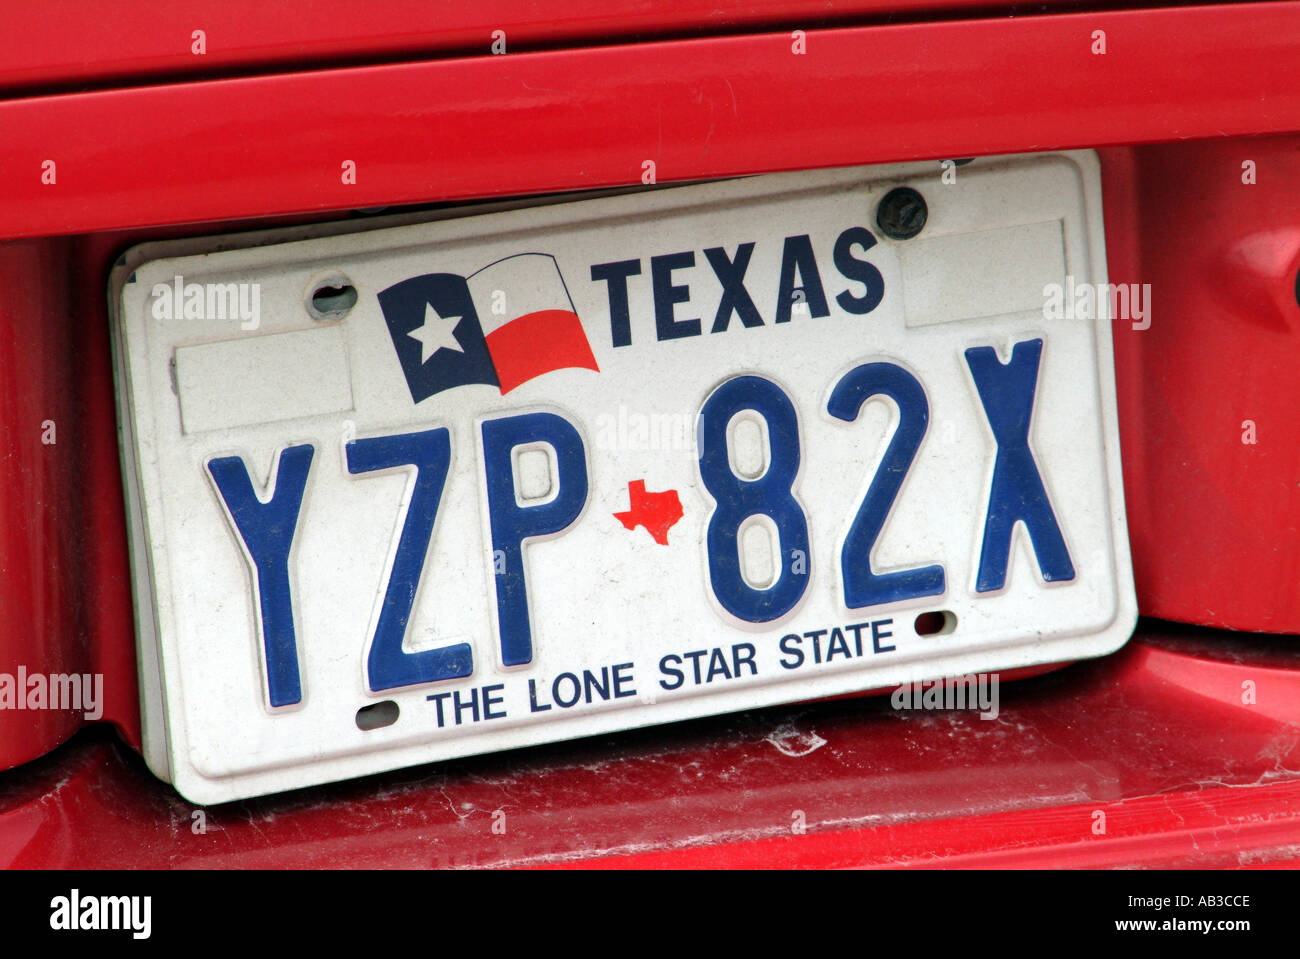 Texas License Plate Stock Photos & Texas License Plate Stock Images ...